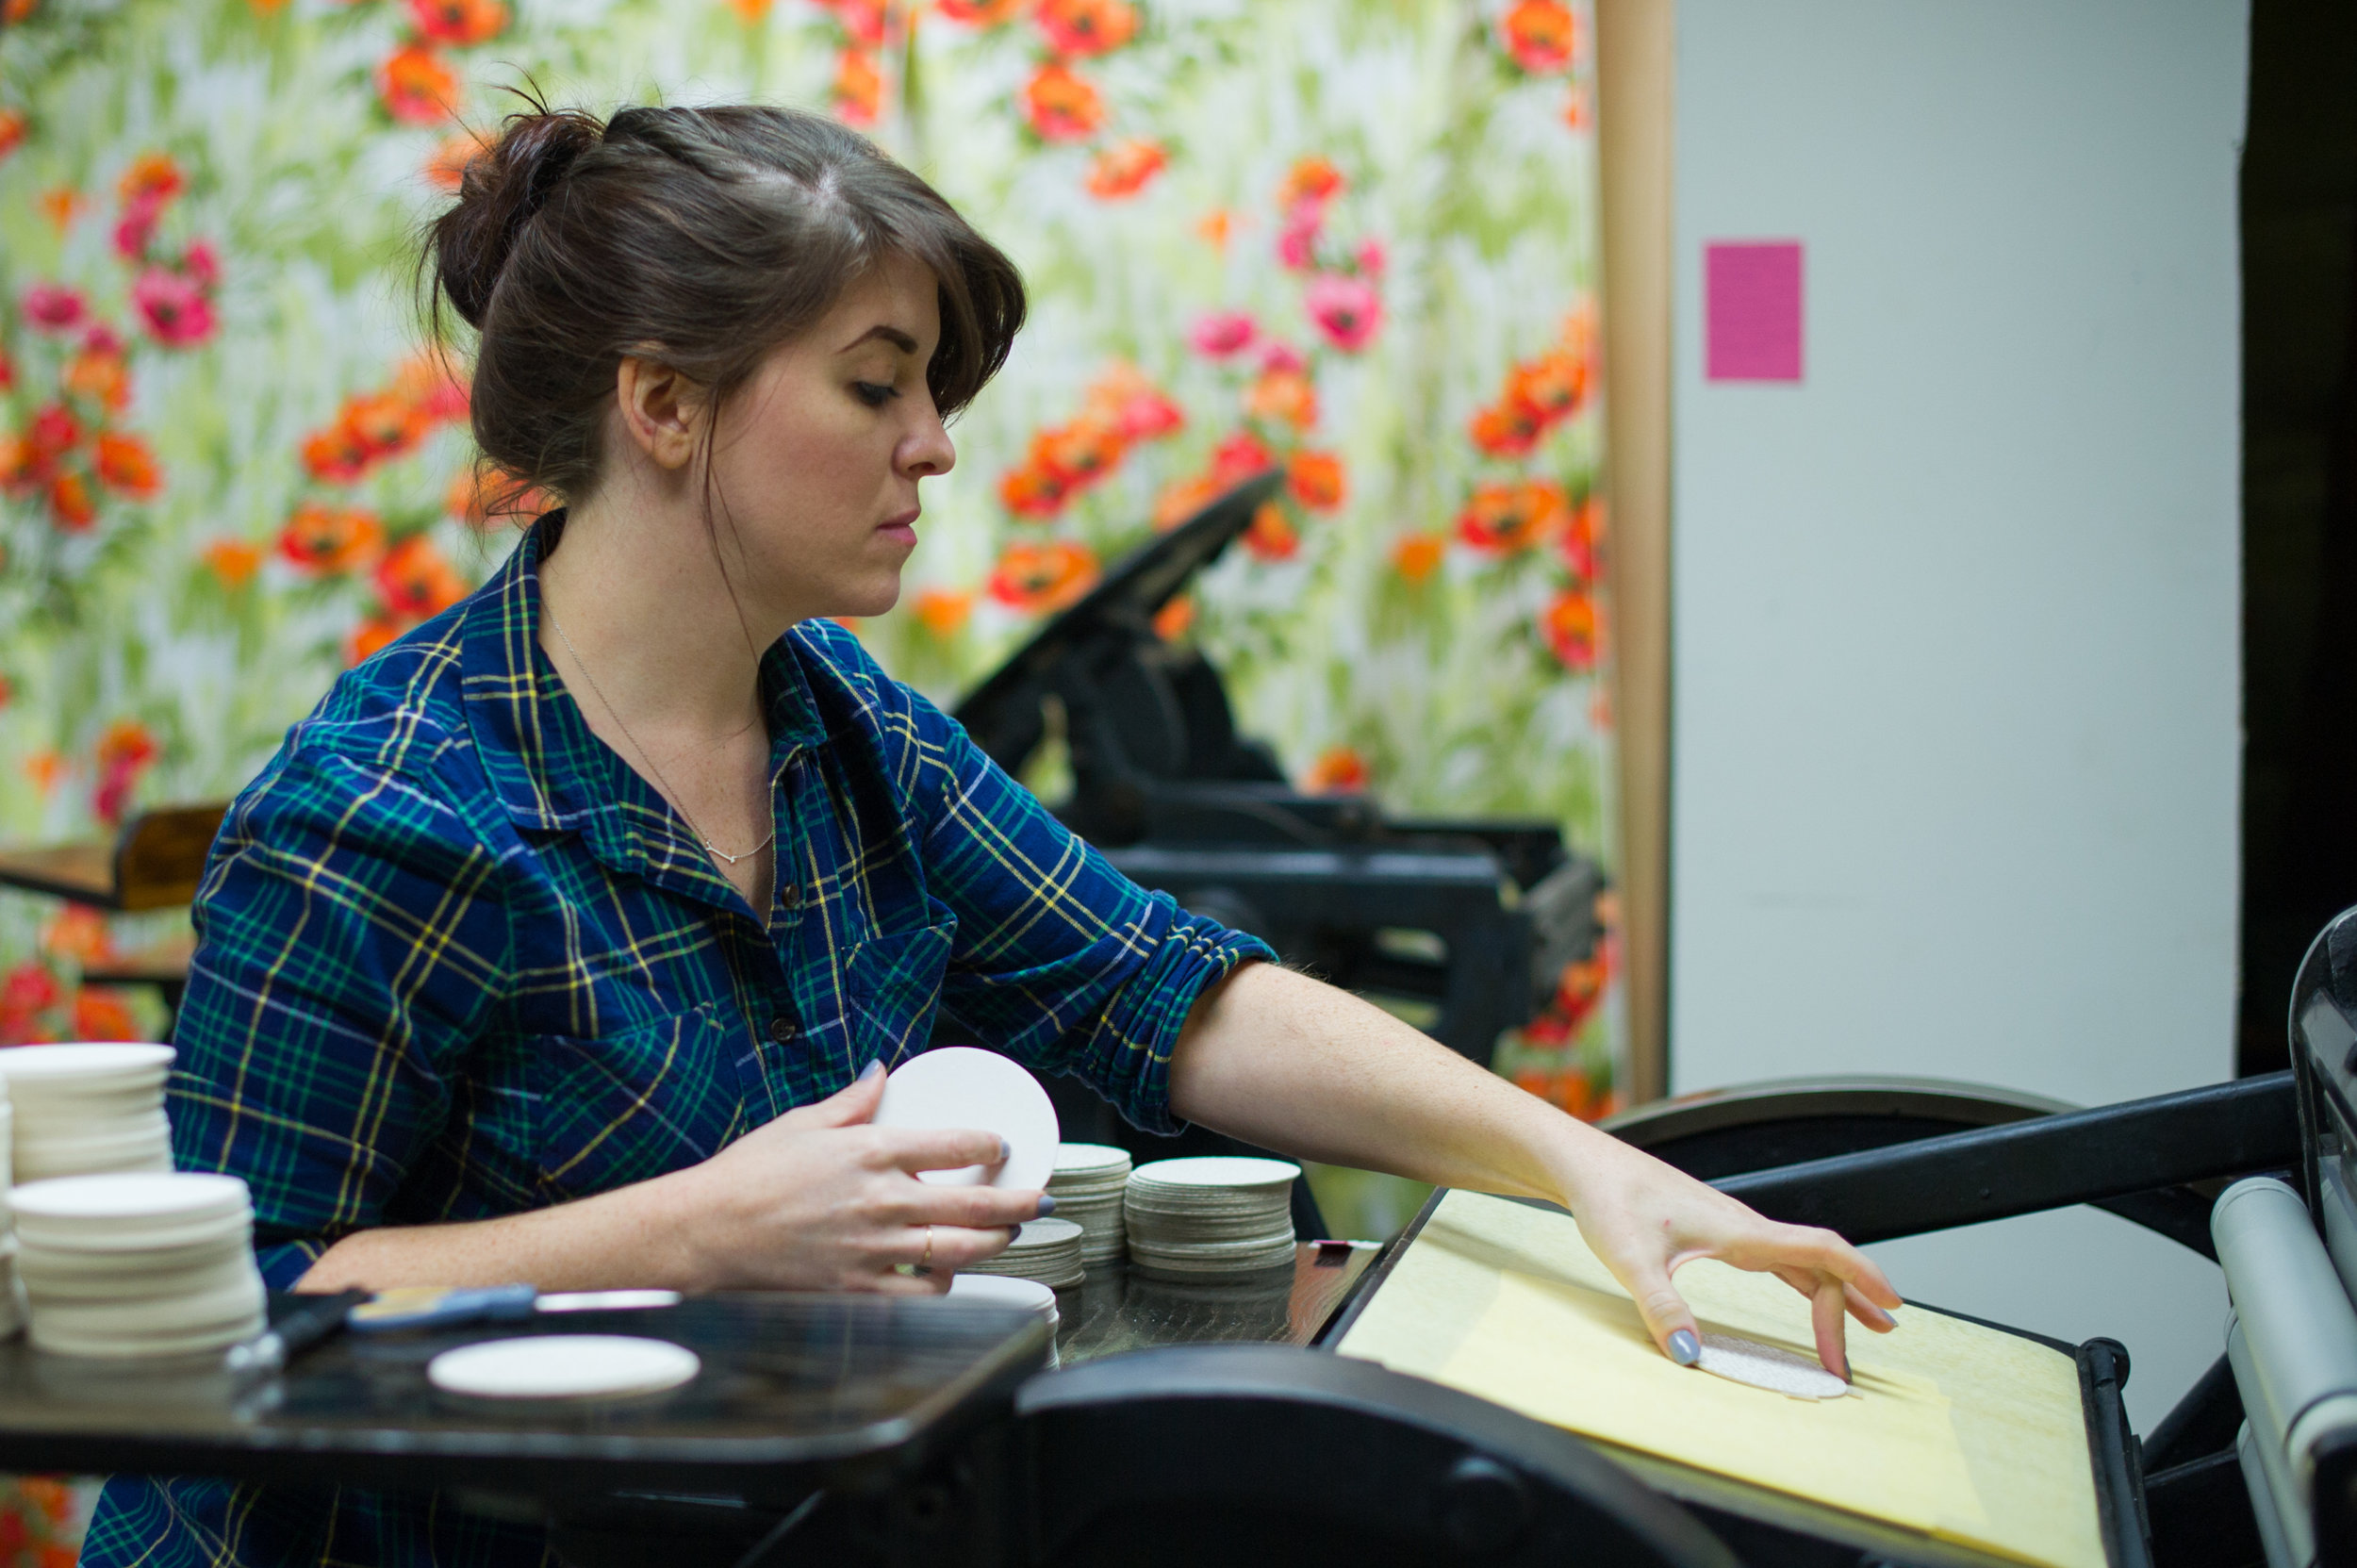 Another press artist feeds round coasters into the press for a special letterpress printing job!  LAURA BARNES PHOTO.